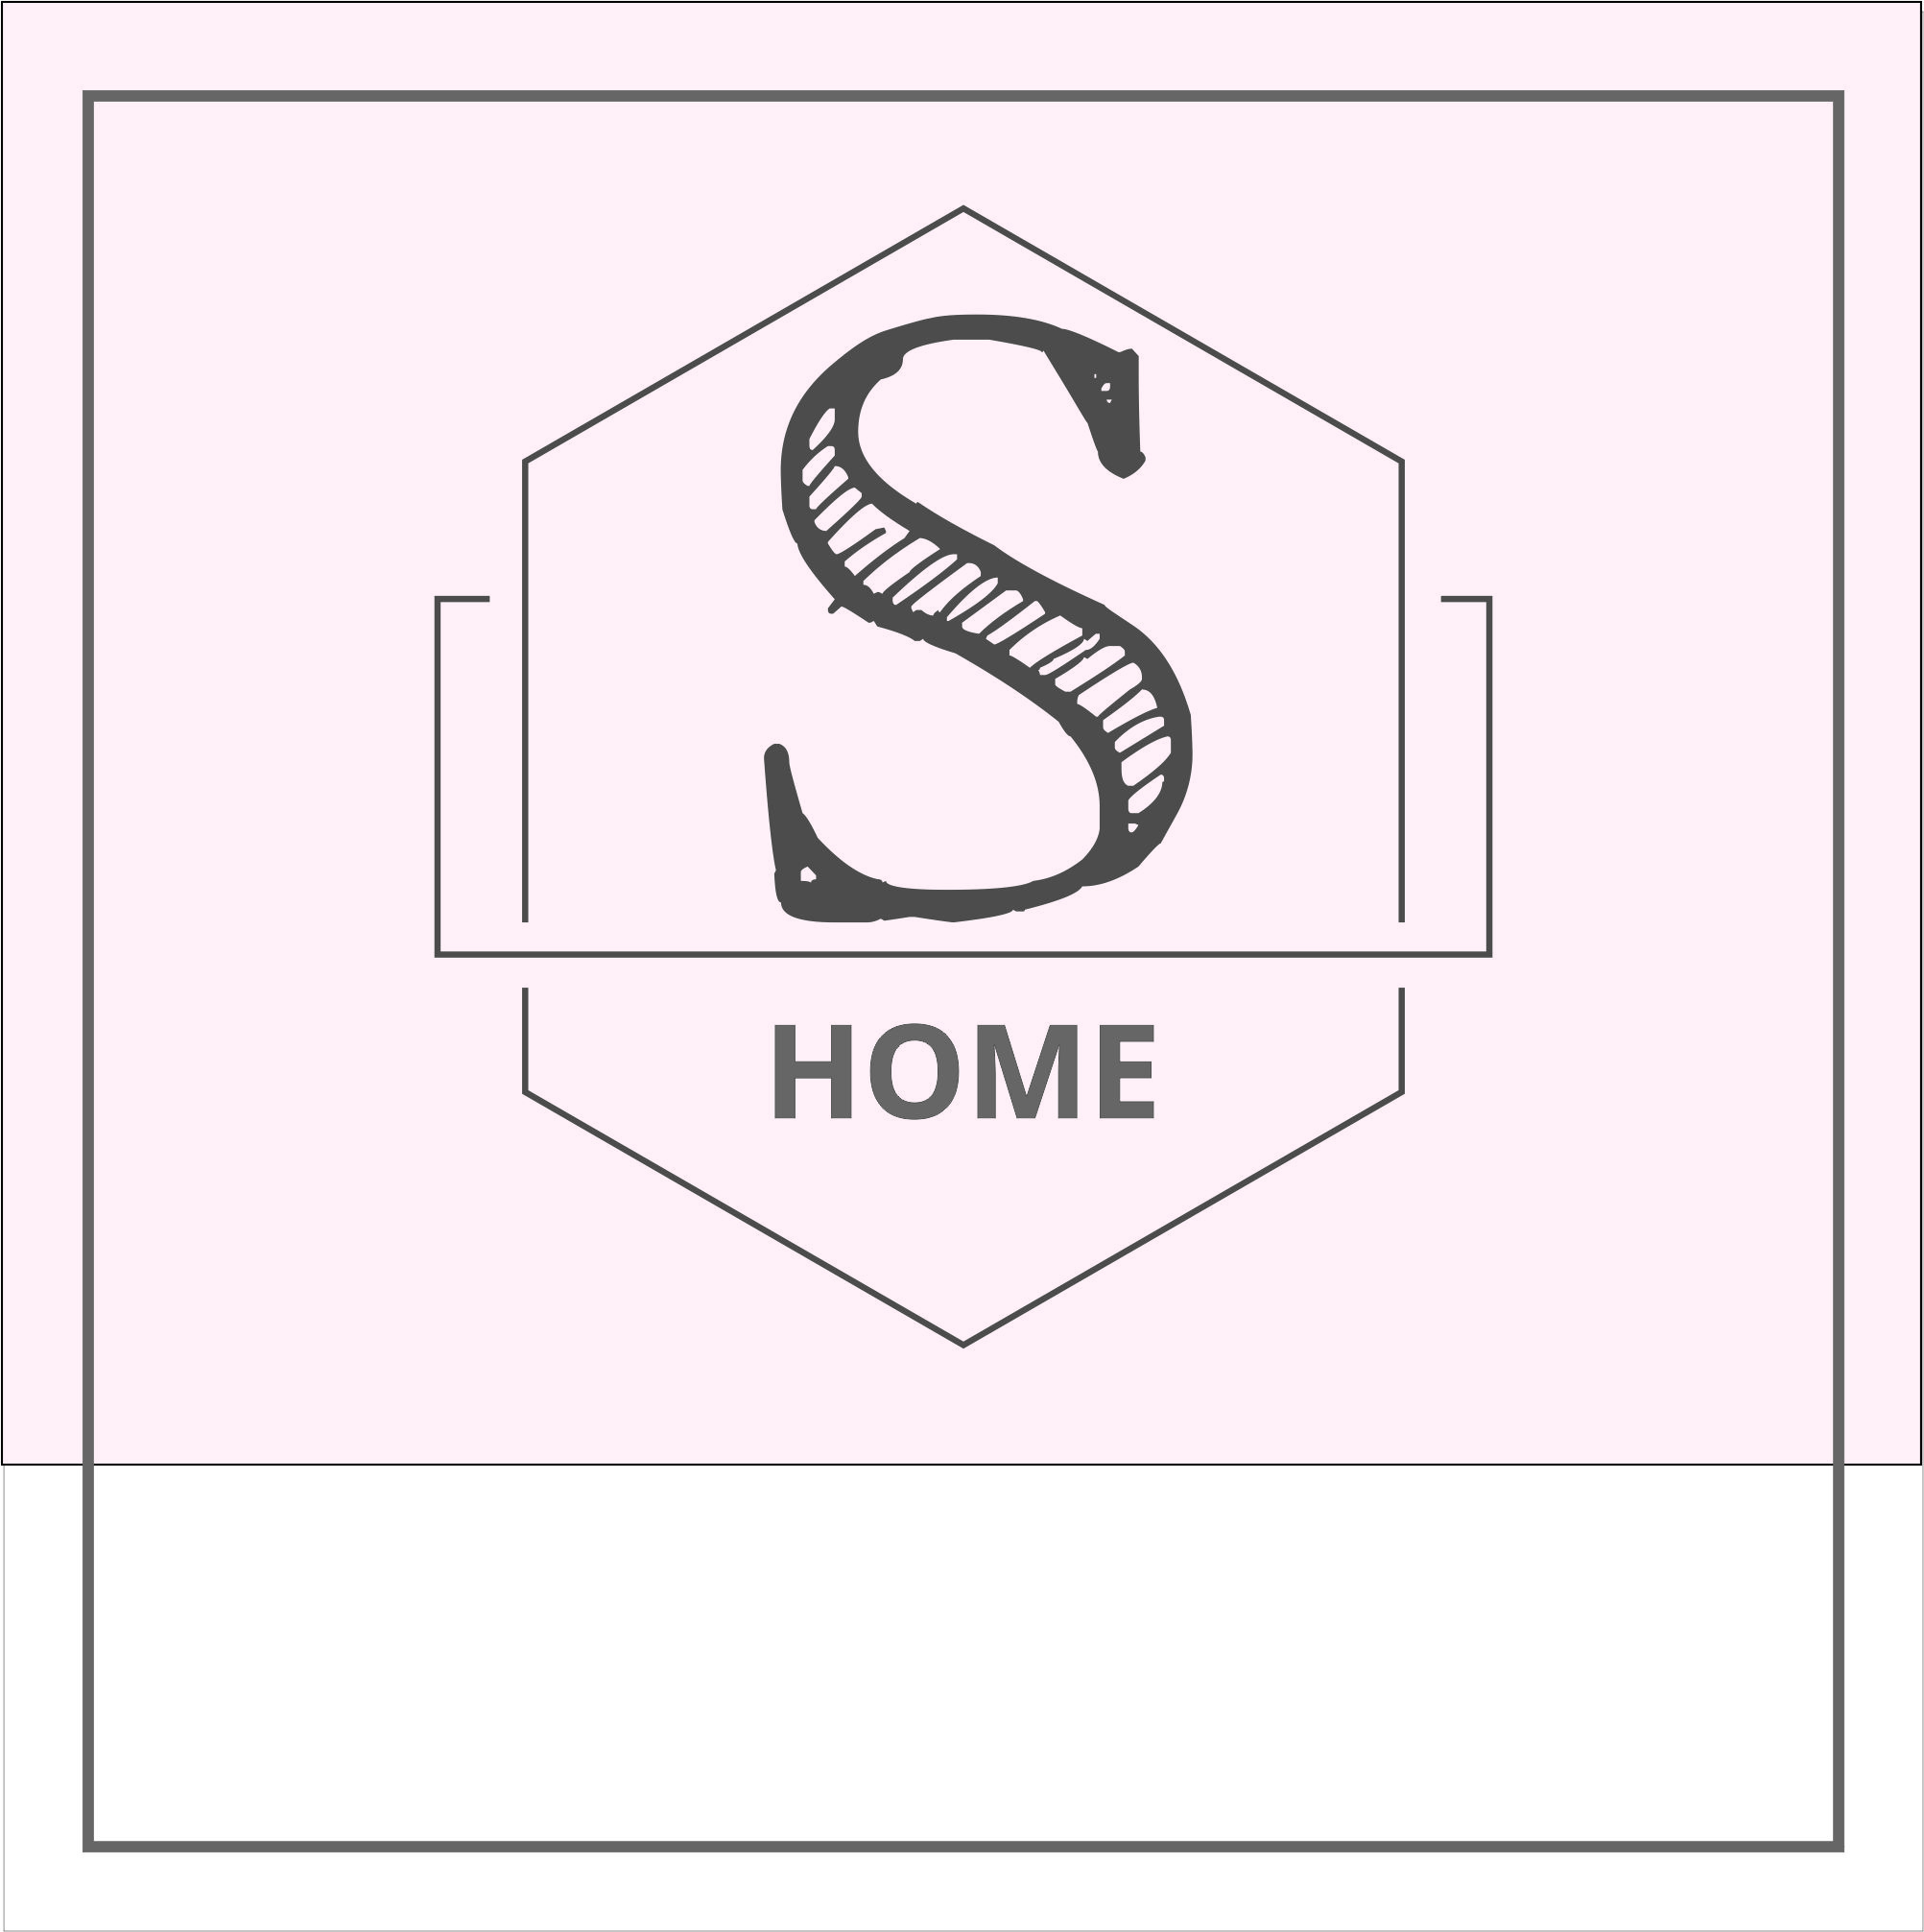 S.HOME